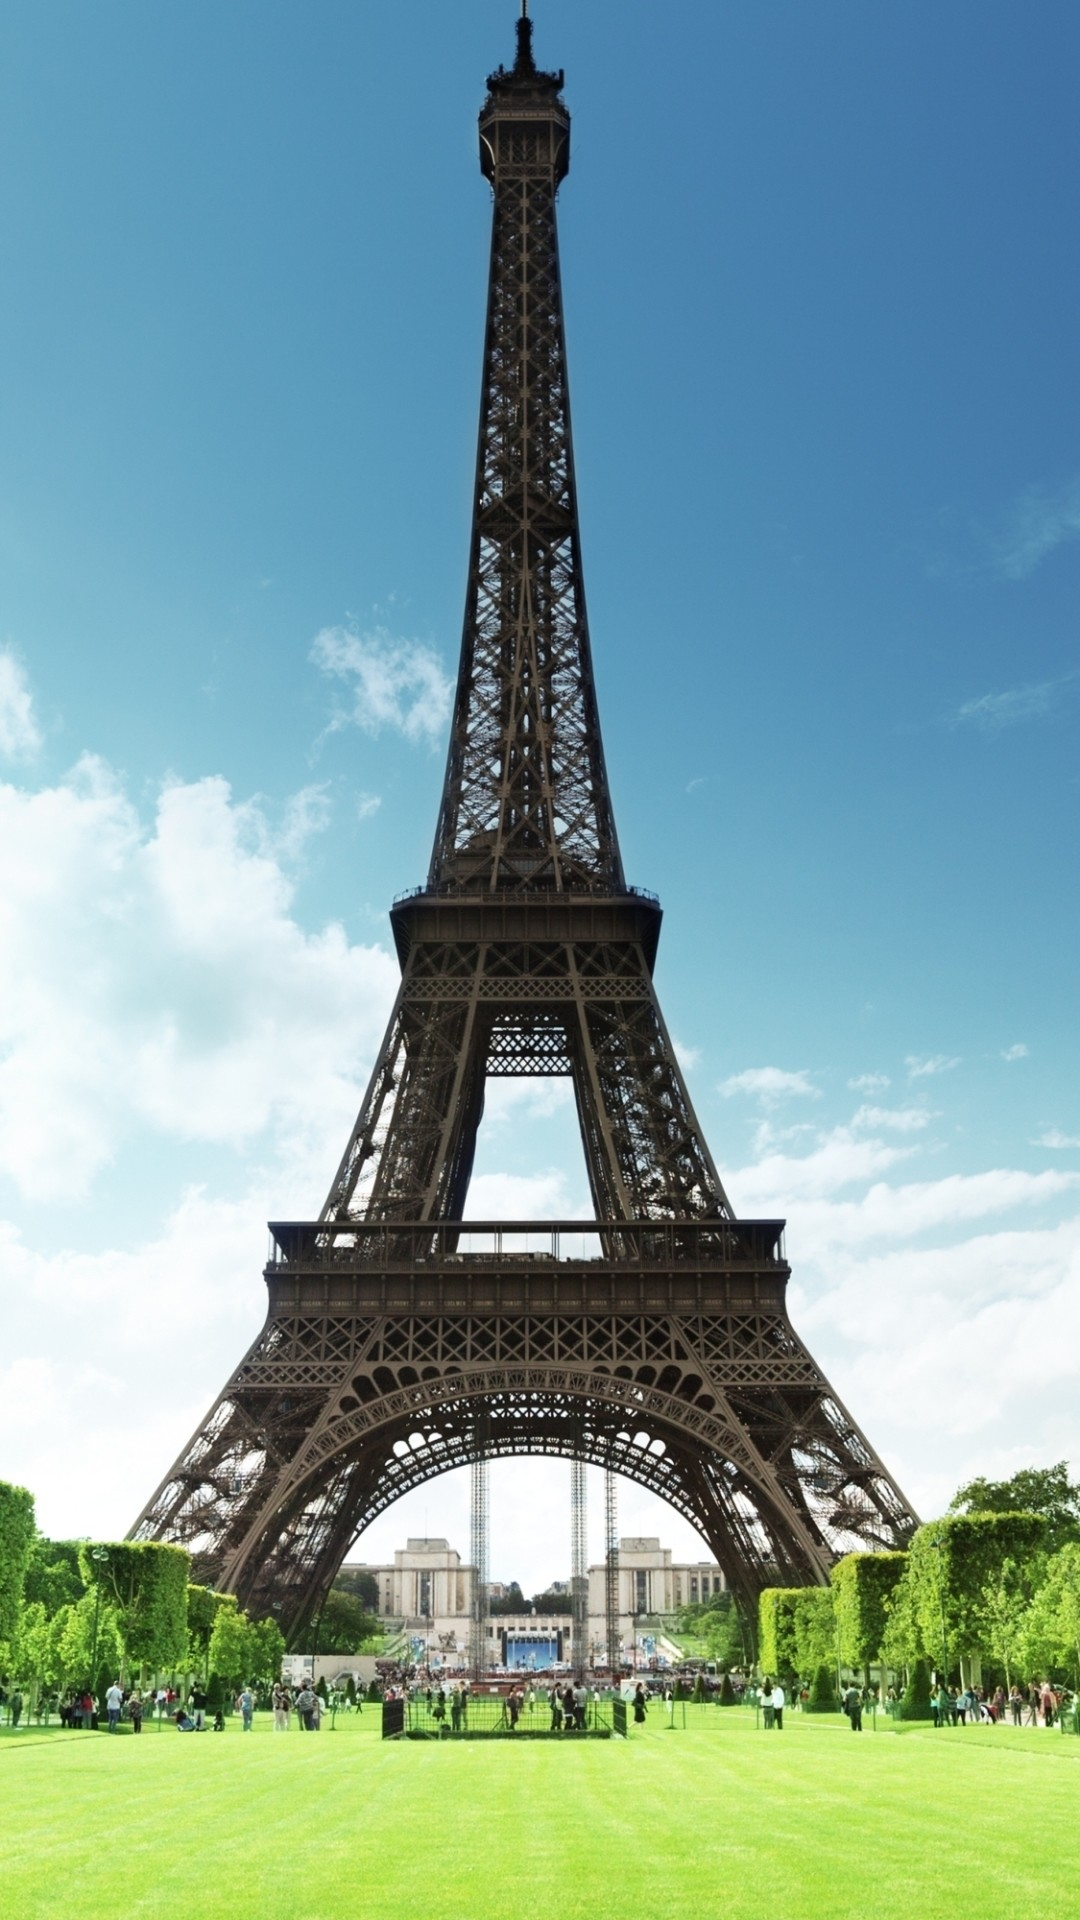 1080x1920 Man Made Eiffel Tower Monuments. Wallpaper 12509